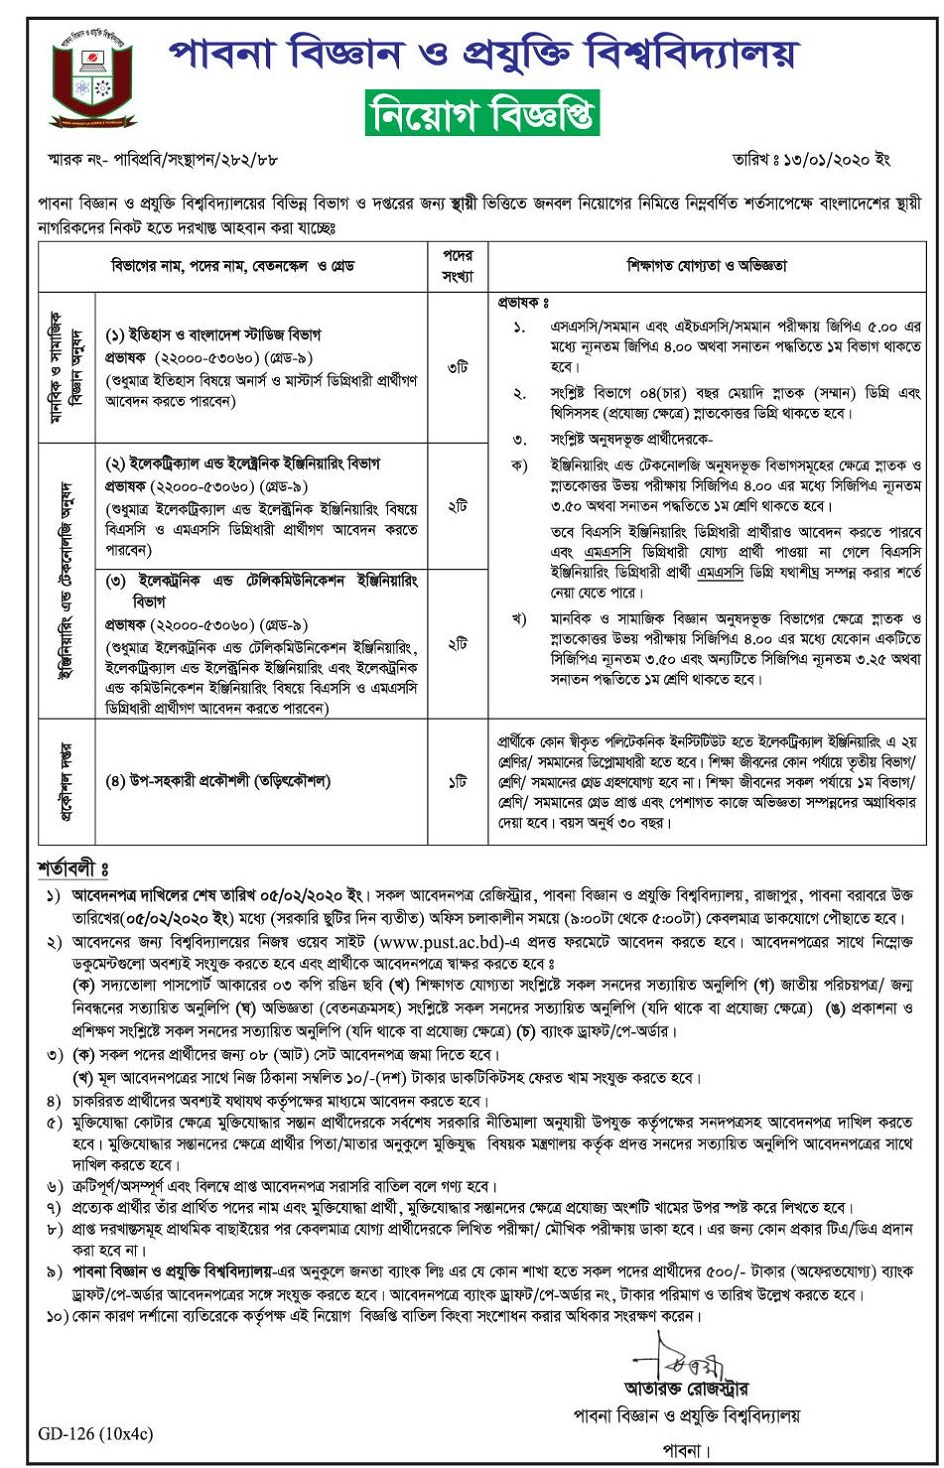 Pabna University of Science and Technology Job Circular 2020